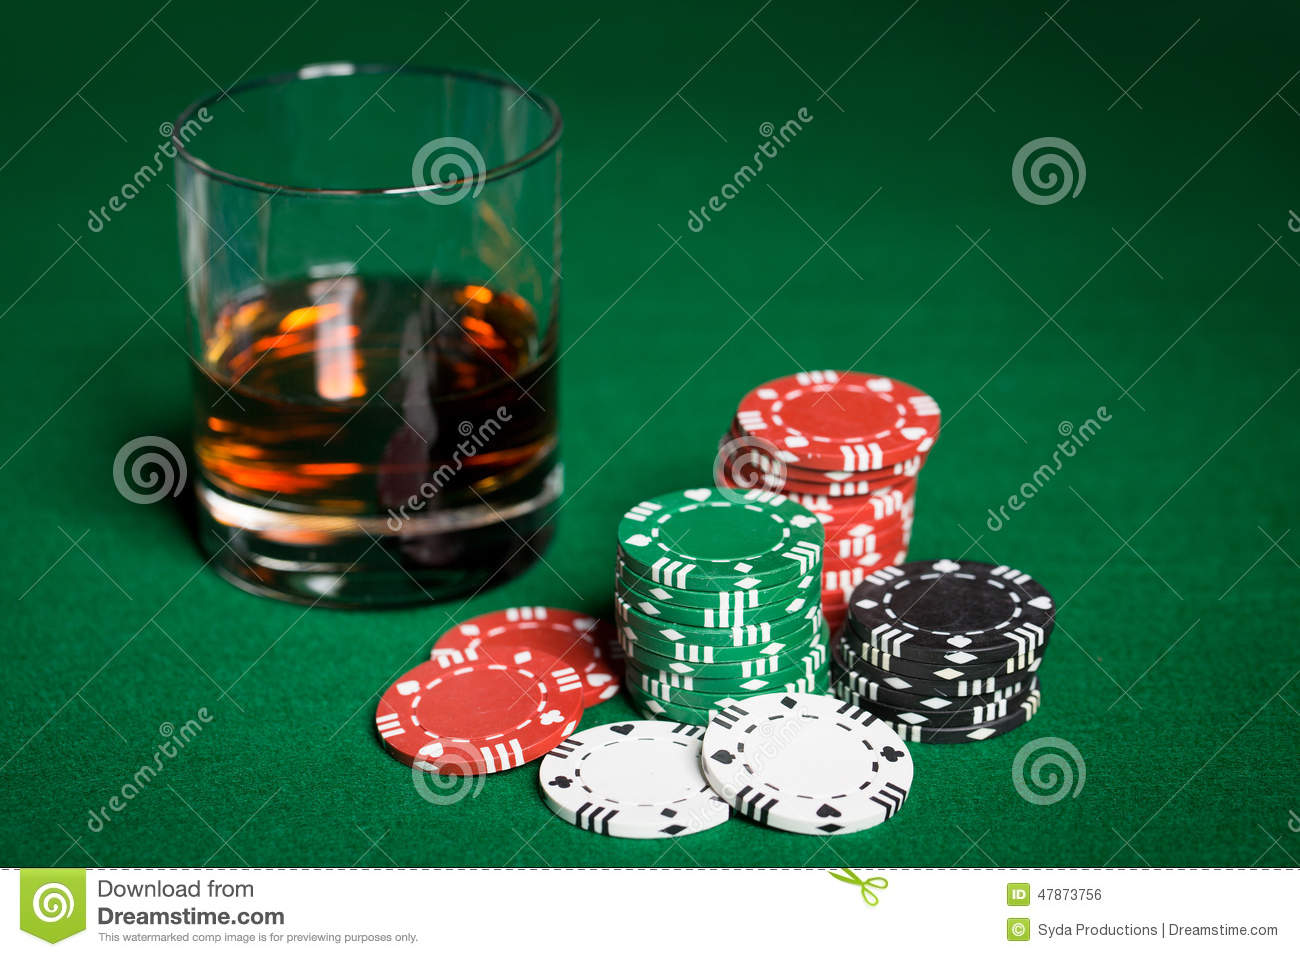 Close up of casino chips and whisky glass on table